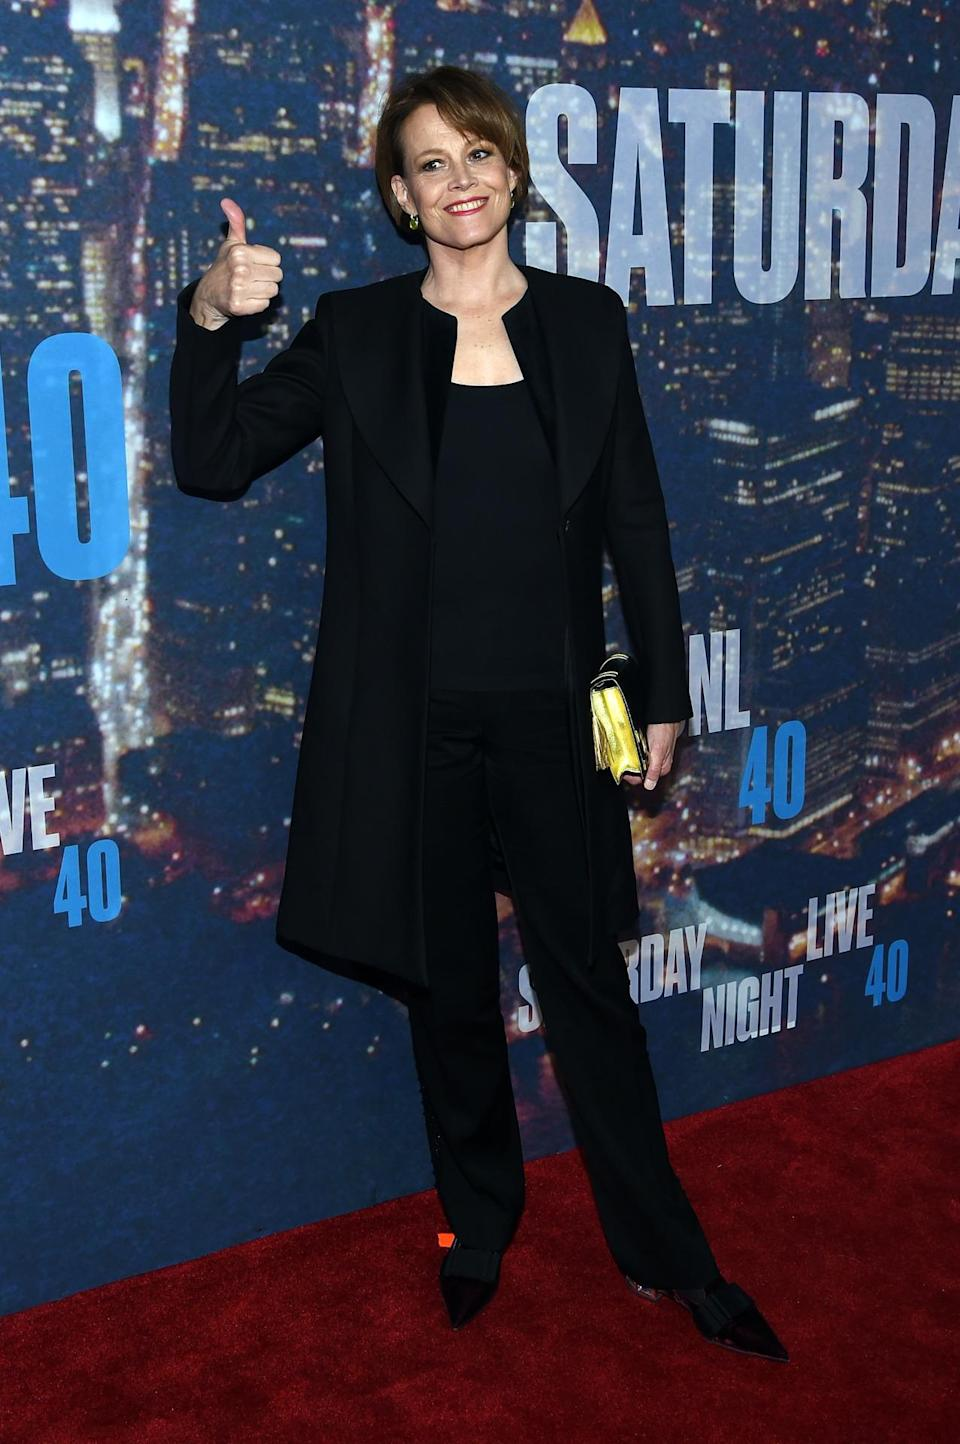 Sigourney Weaver plays it safe in head-to-toe black separates.